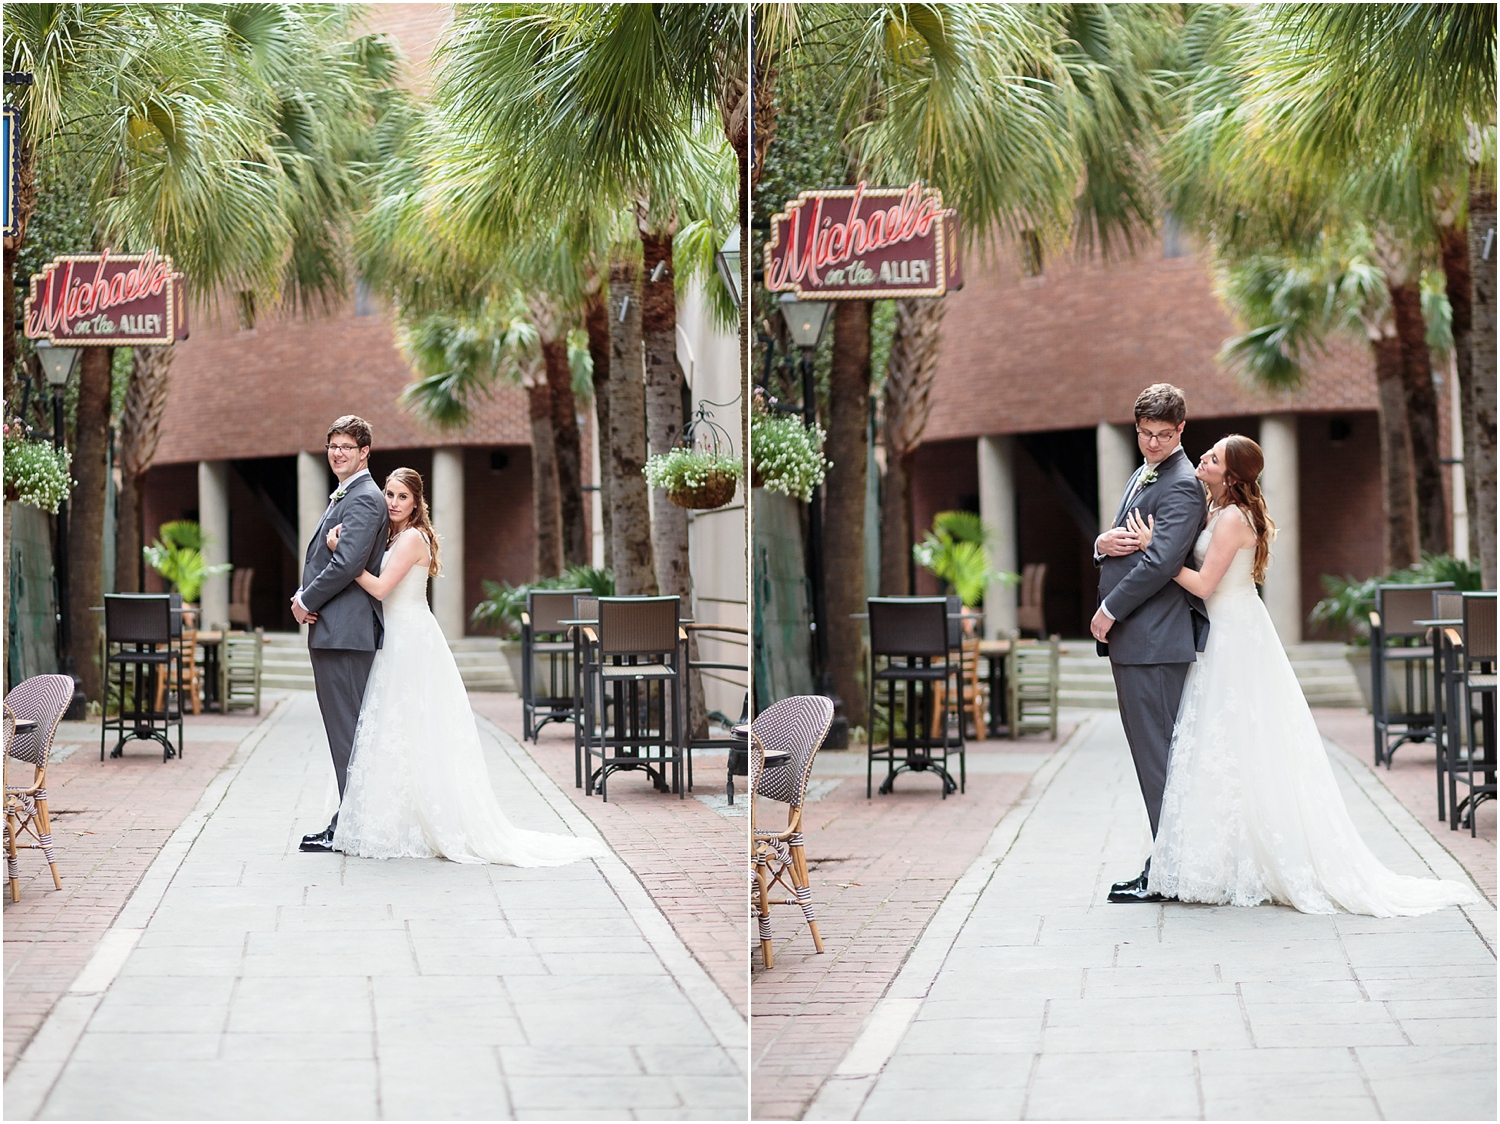 20150425-Charleston-Meagan-Phillip-489_blog.jpg